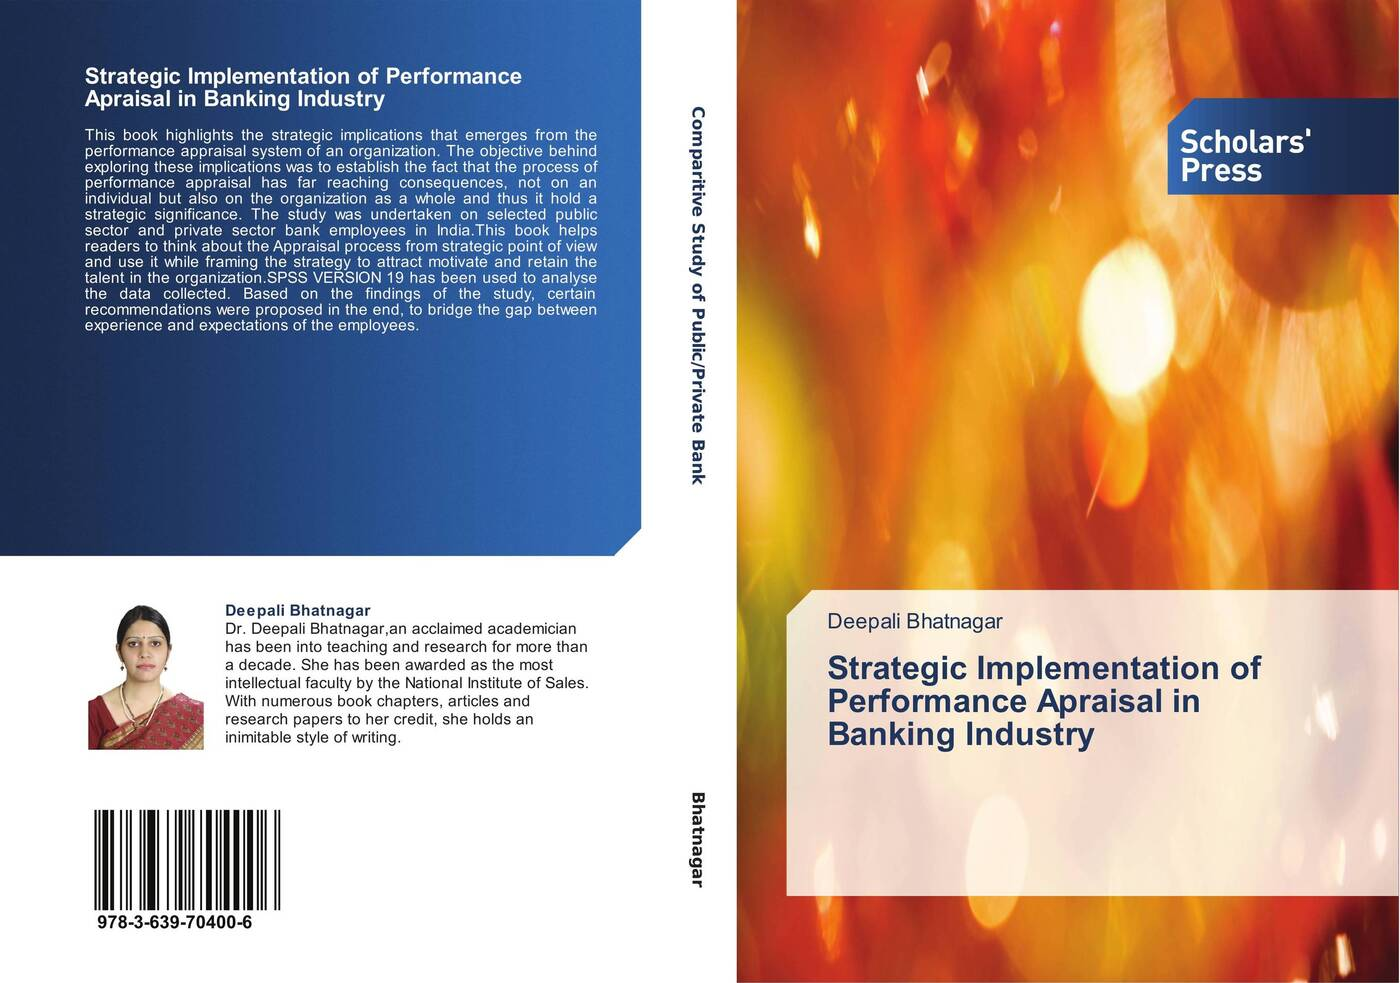 Deepali Bhatnagar Strategic Implementation of Performance Apraisal in Banking Industry implementation of rf based speed governor system in public sector